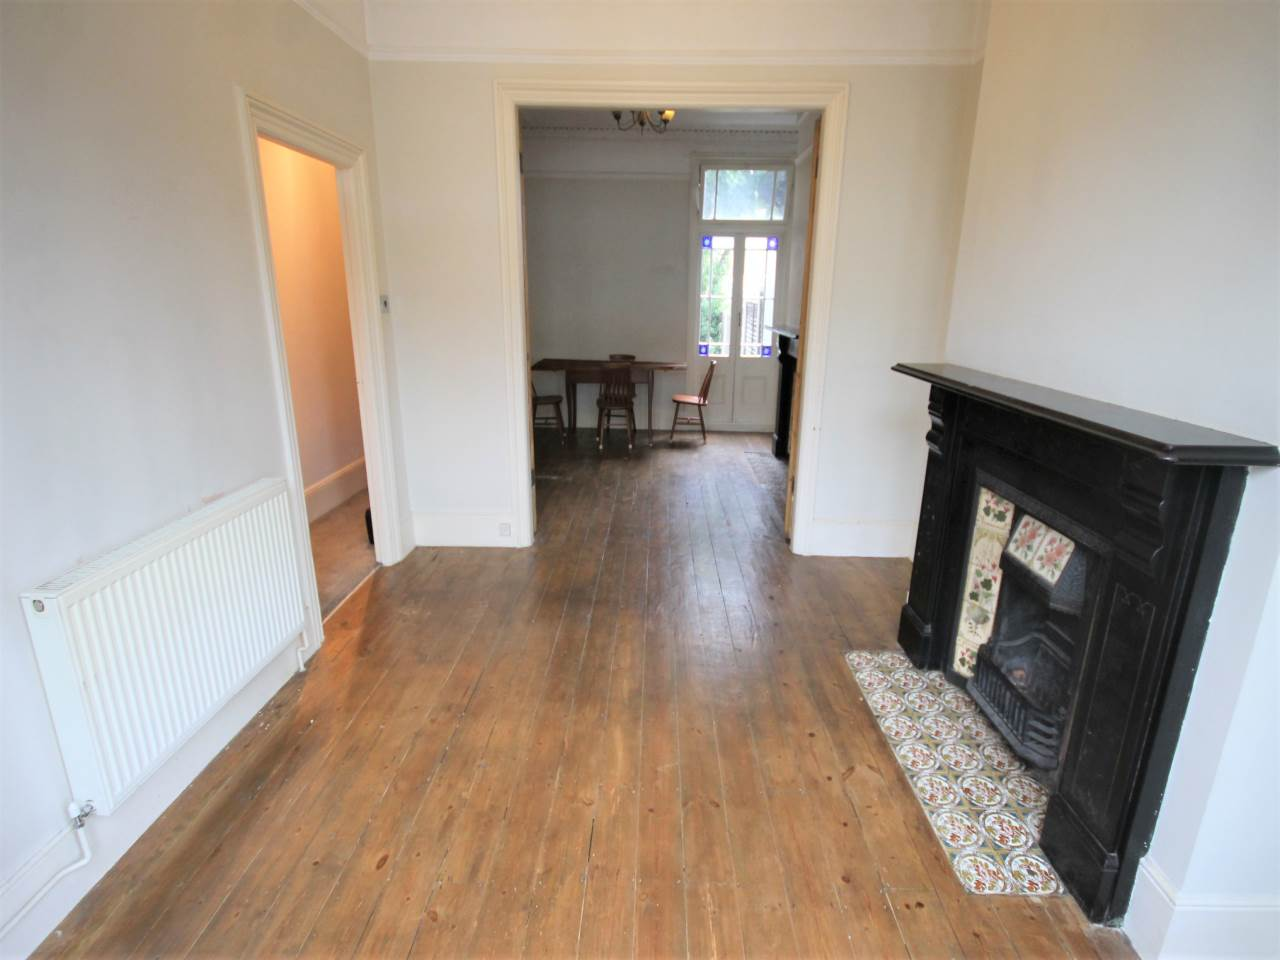 1 bed flat to rent in Leyton - Property Image 1